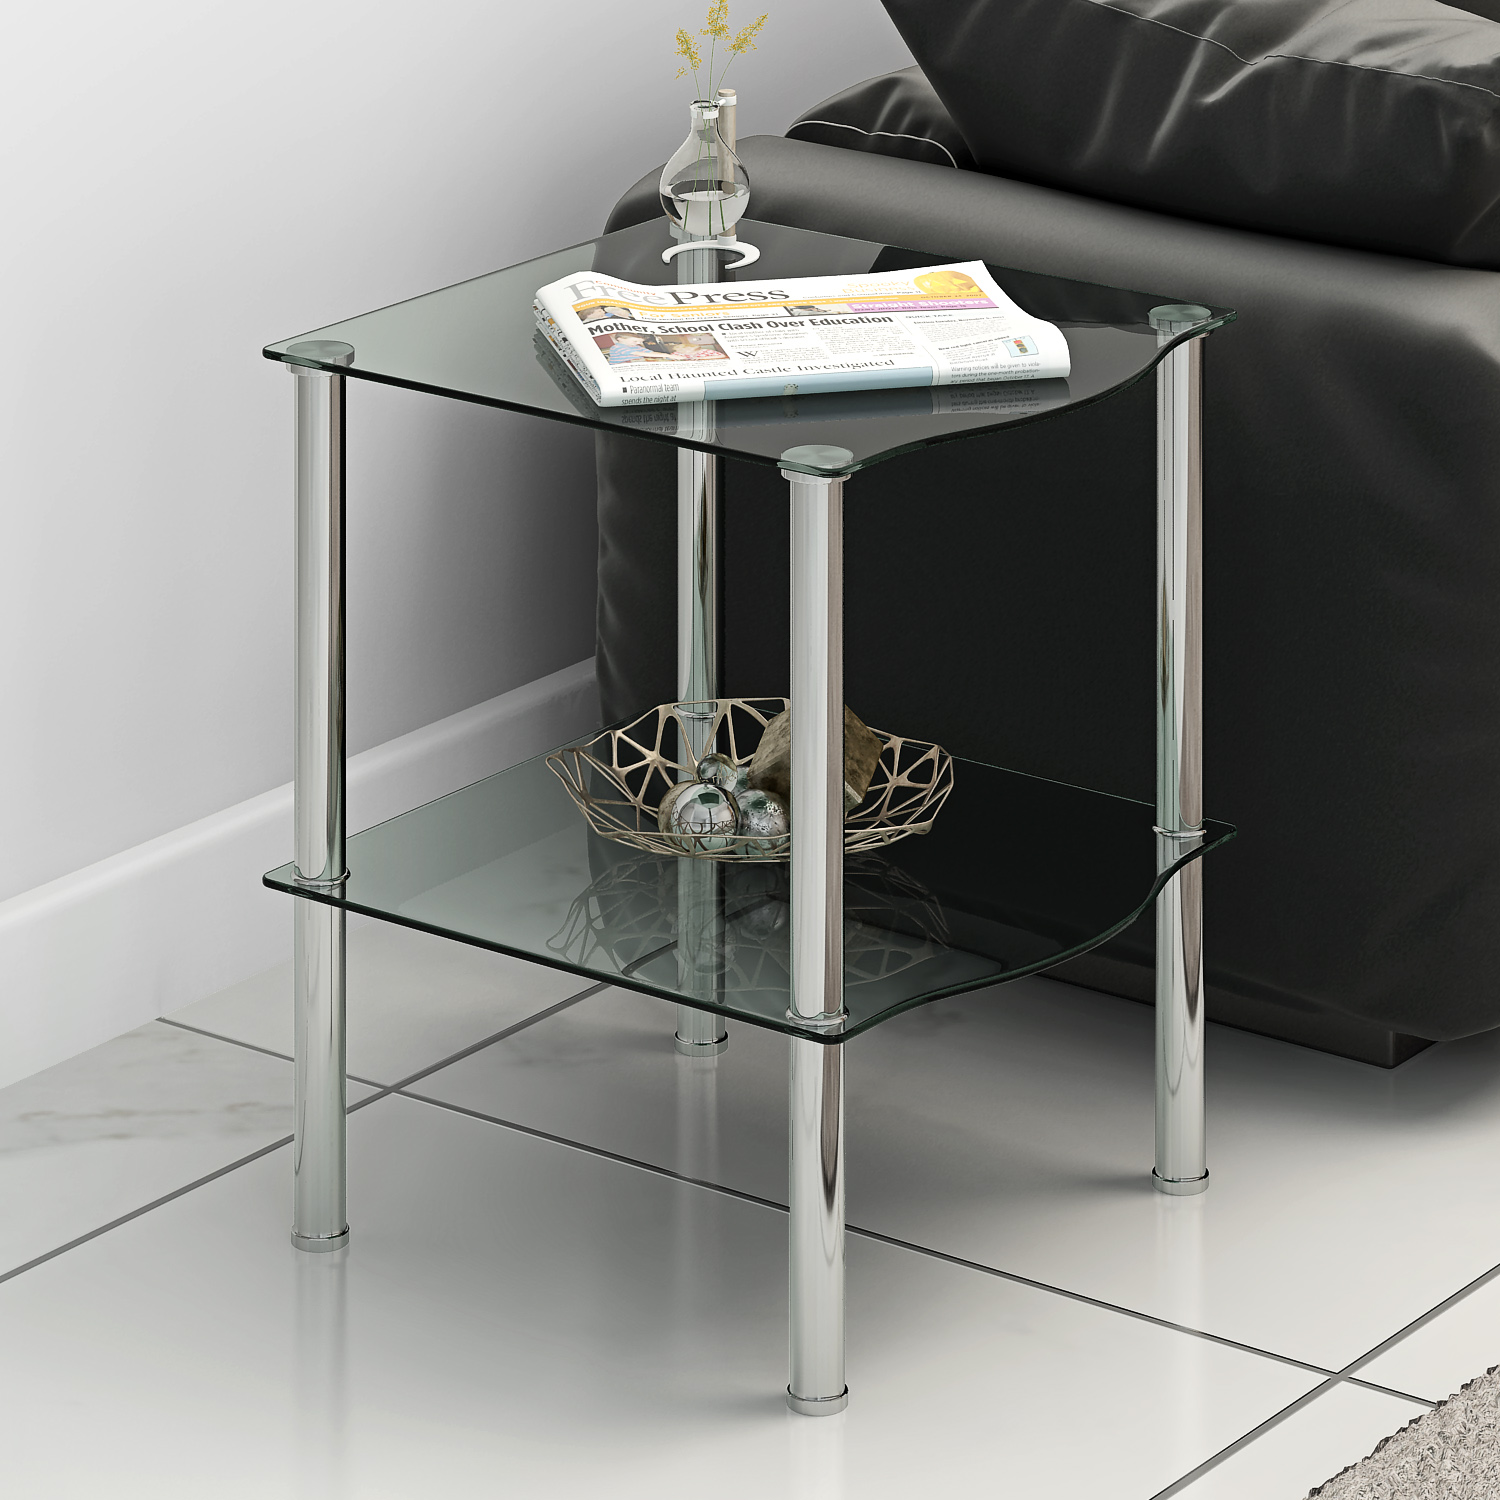 Panana Modern 2 Tiers Glass Side End Coffee Lamp Table Minimalist Display Stand Shelf Sofa Side Small Table Black/Clear